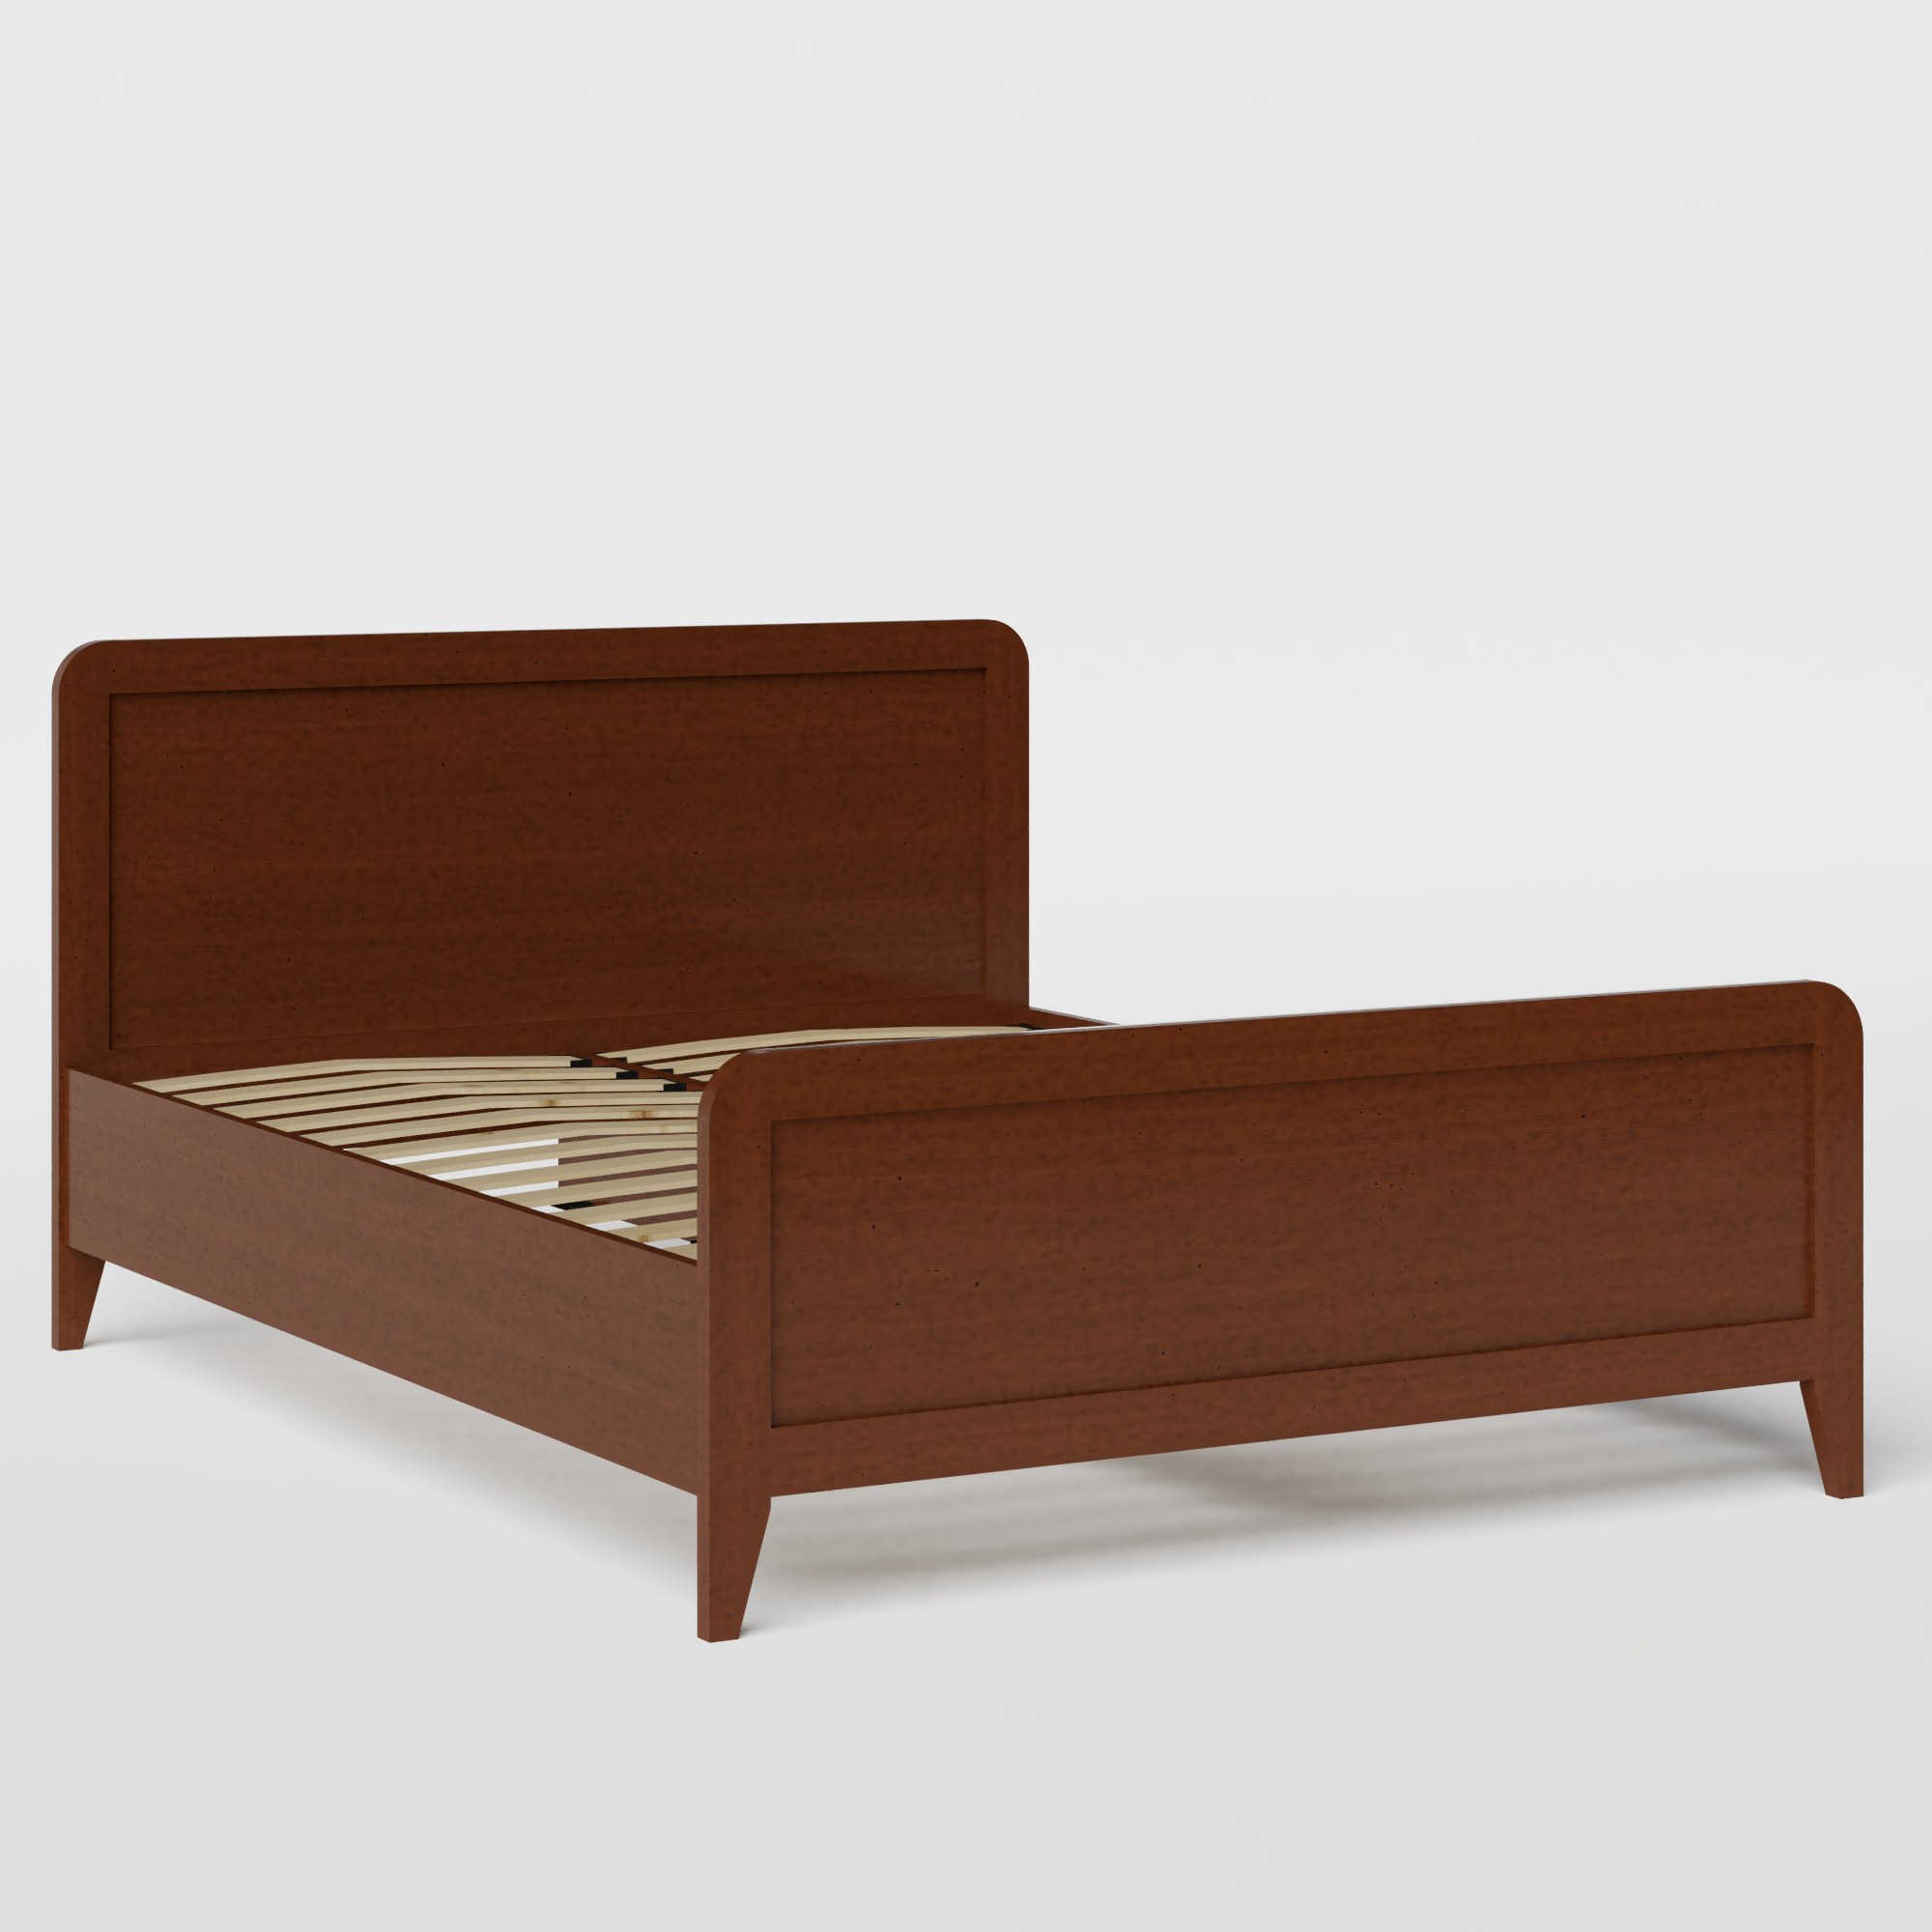 Keats wood bed in dark cherry